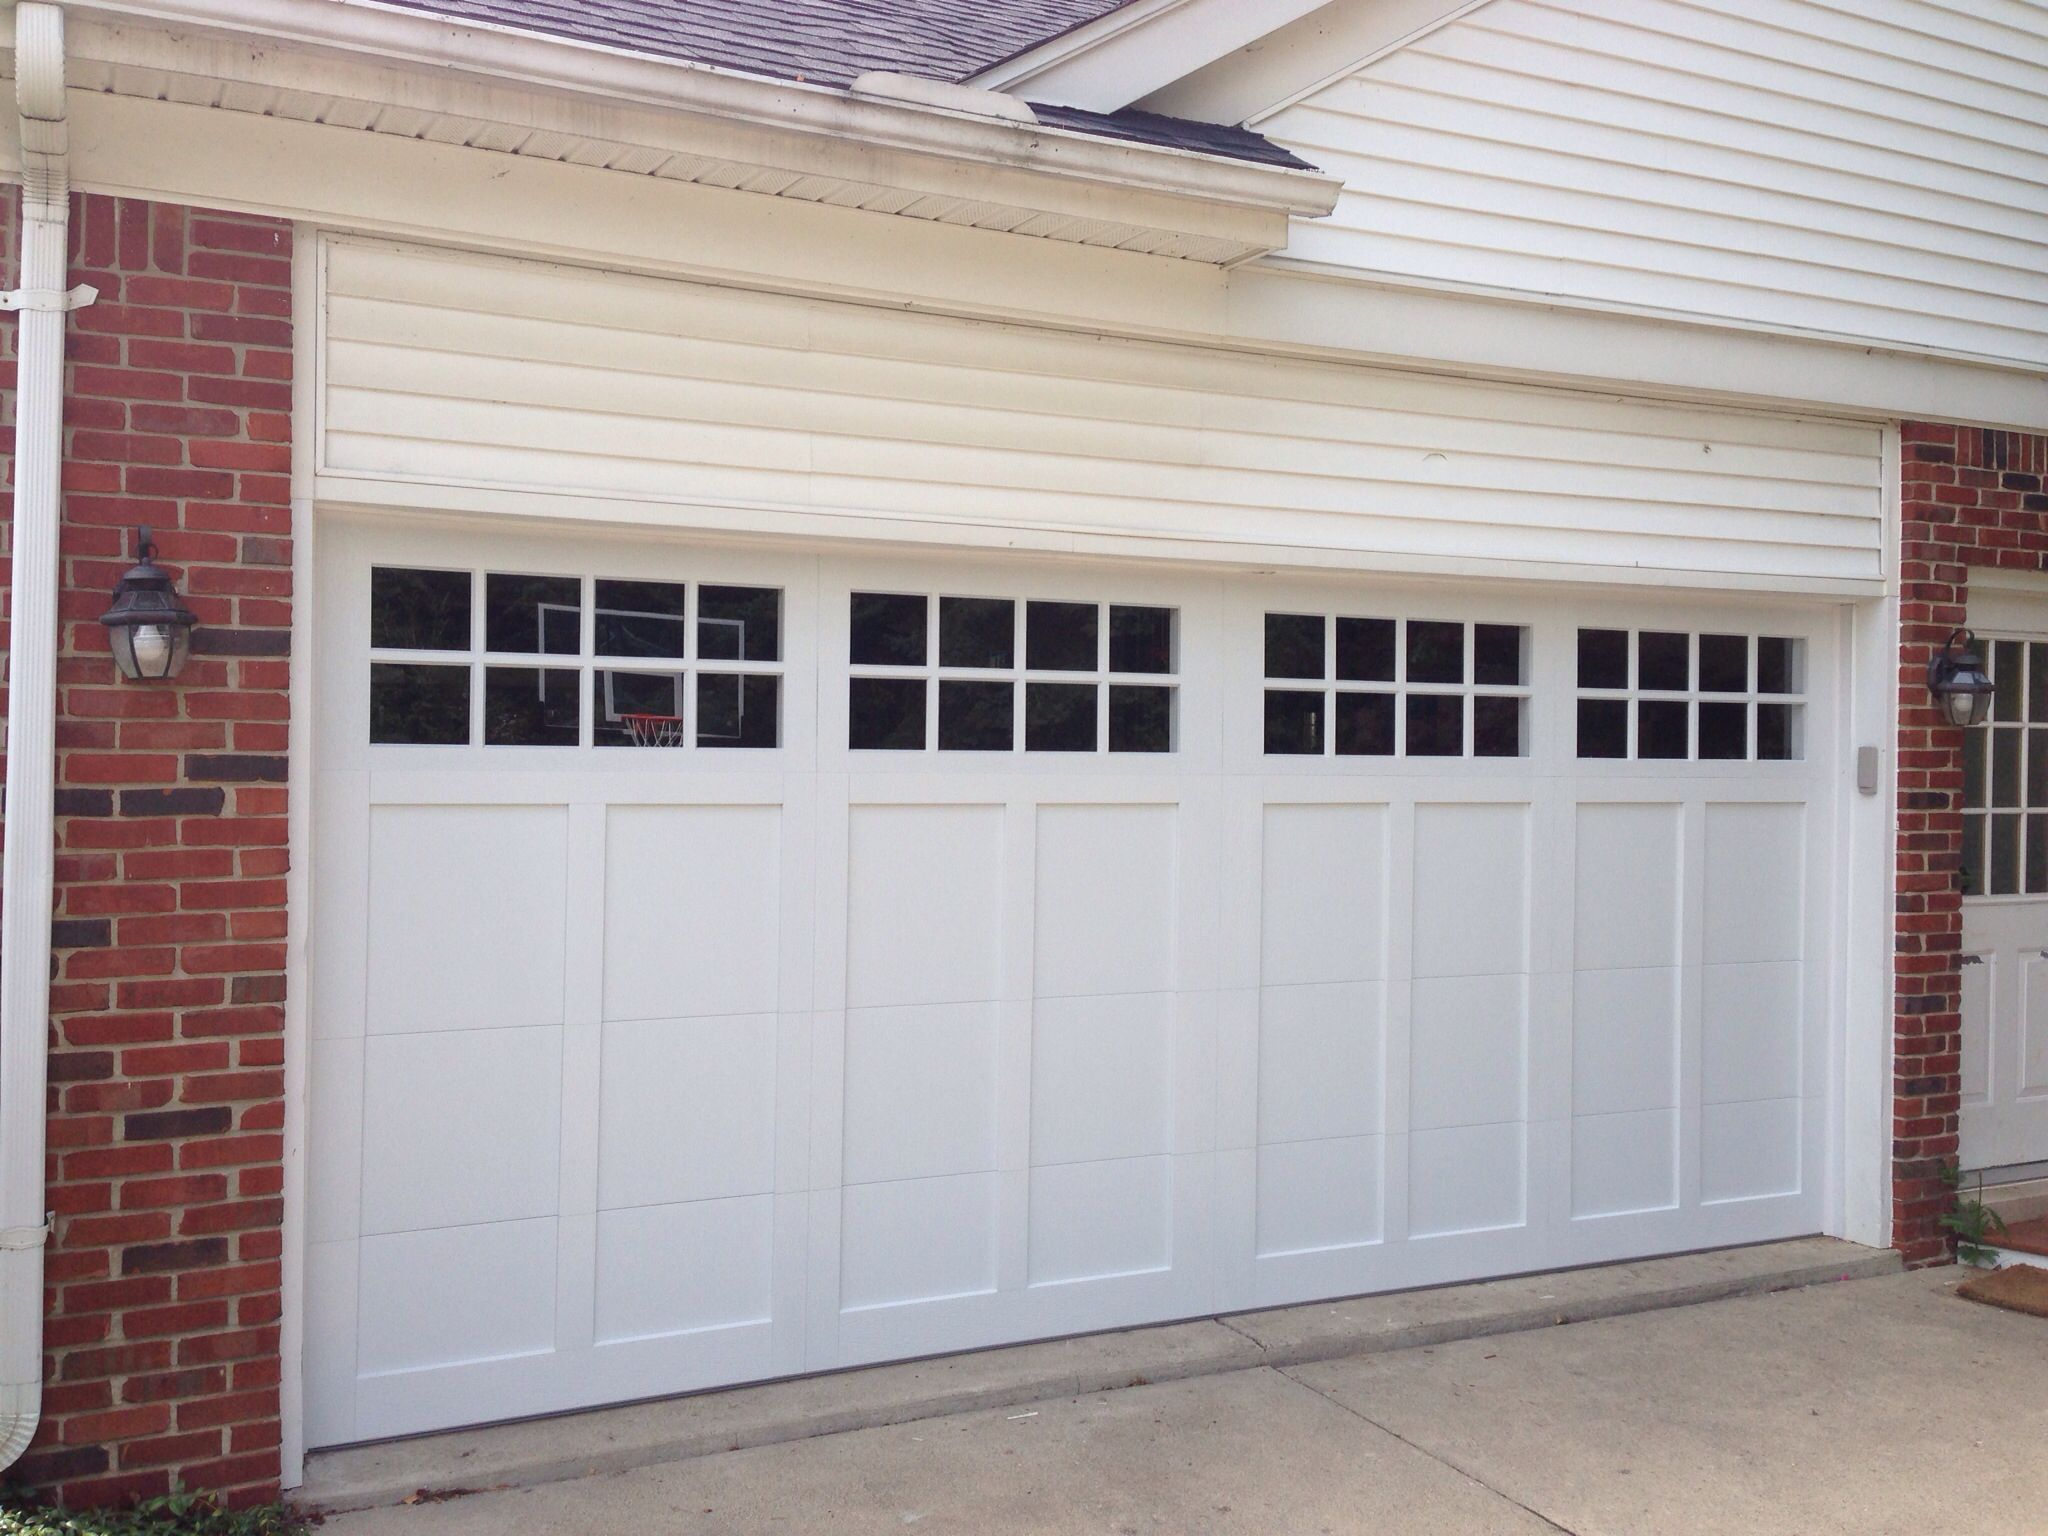 Pin By Kati Leombruno On Carriage House Garage Doors Garage Doors Chi Garage Doors Diy Garage Door